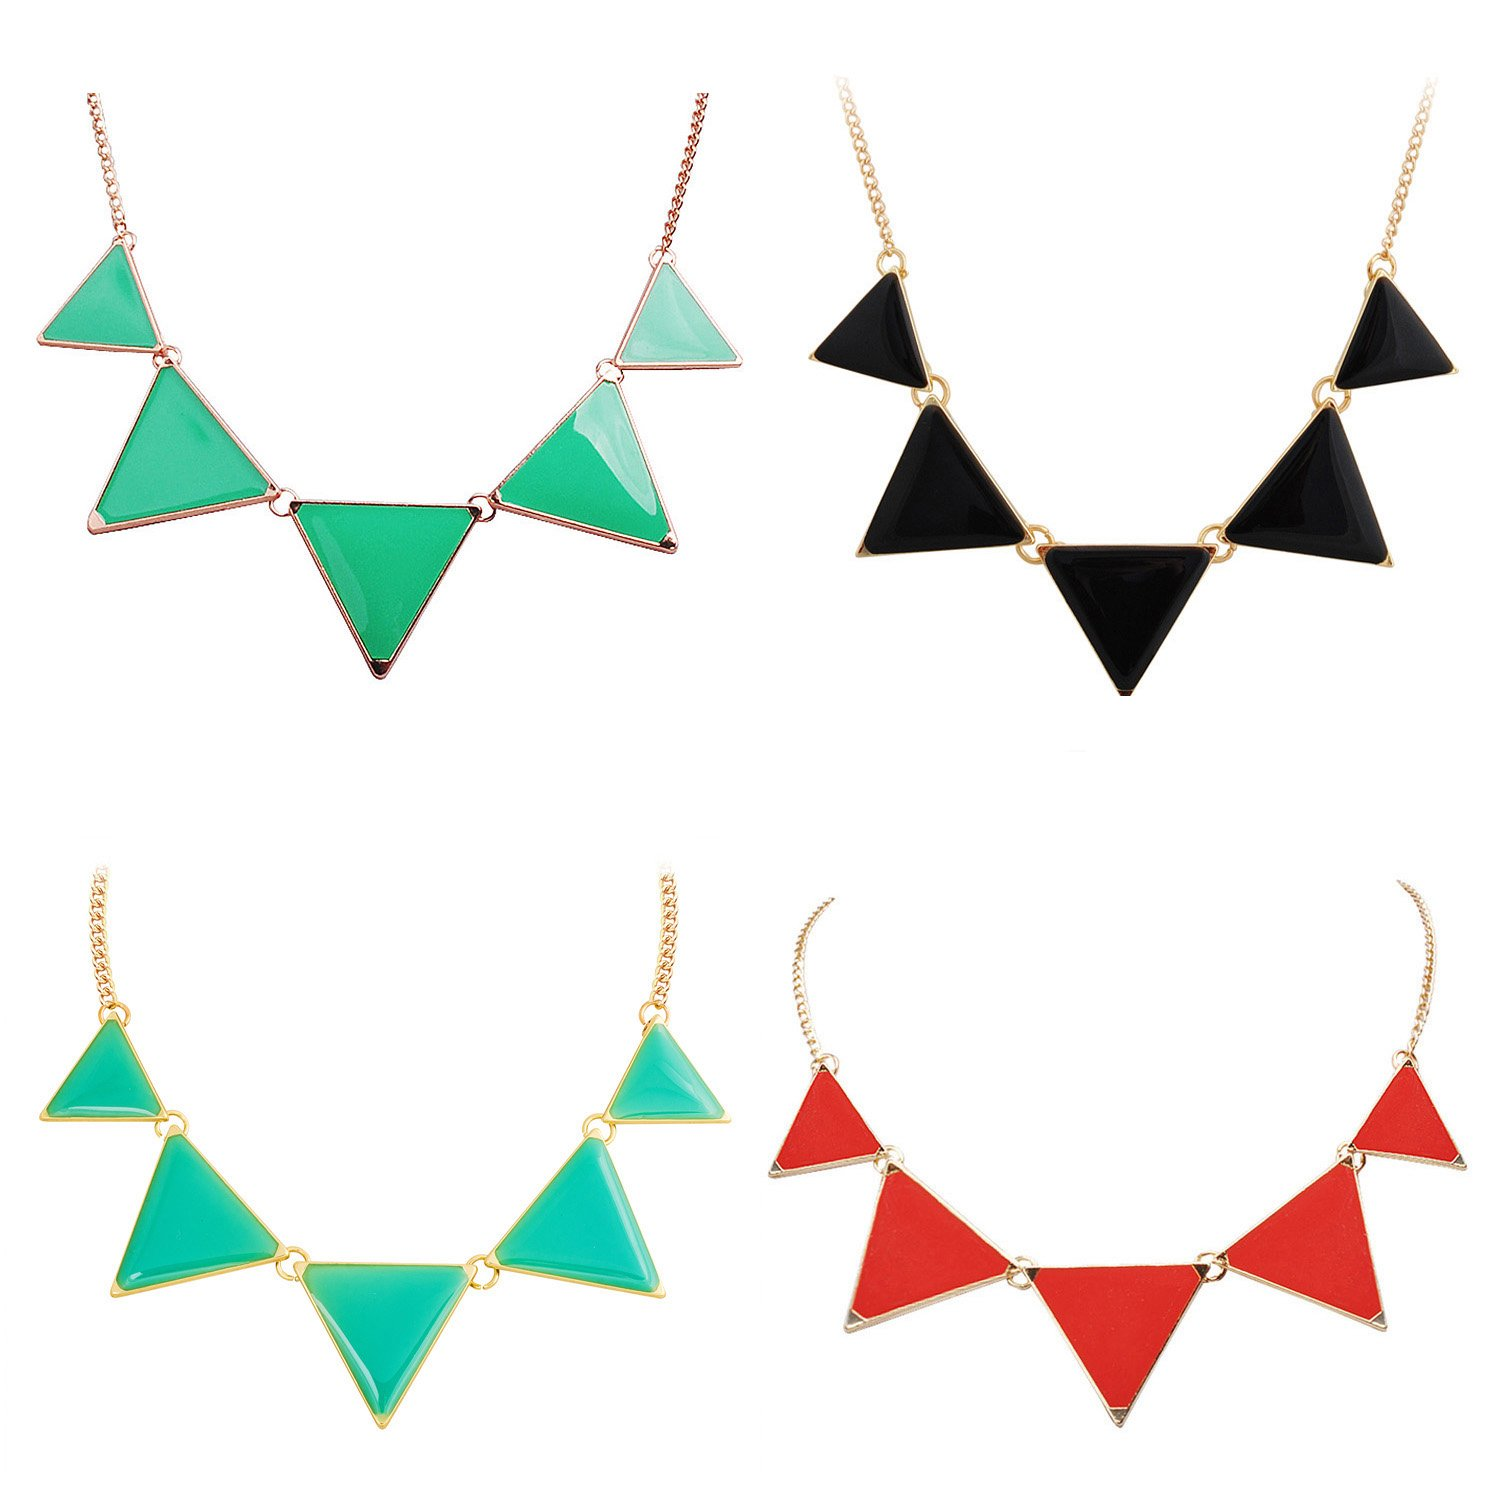 Jane Stone 4PCS Fashion Bubble Bib Collar Necklace Triangle Statement Necklace for Women(Fn0568-4set)